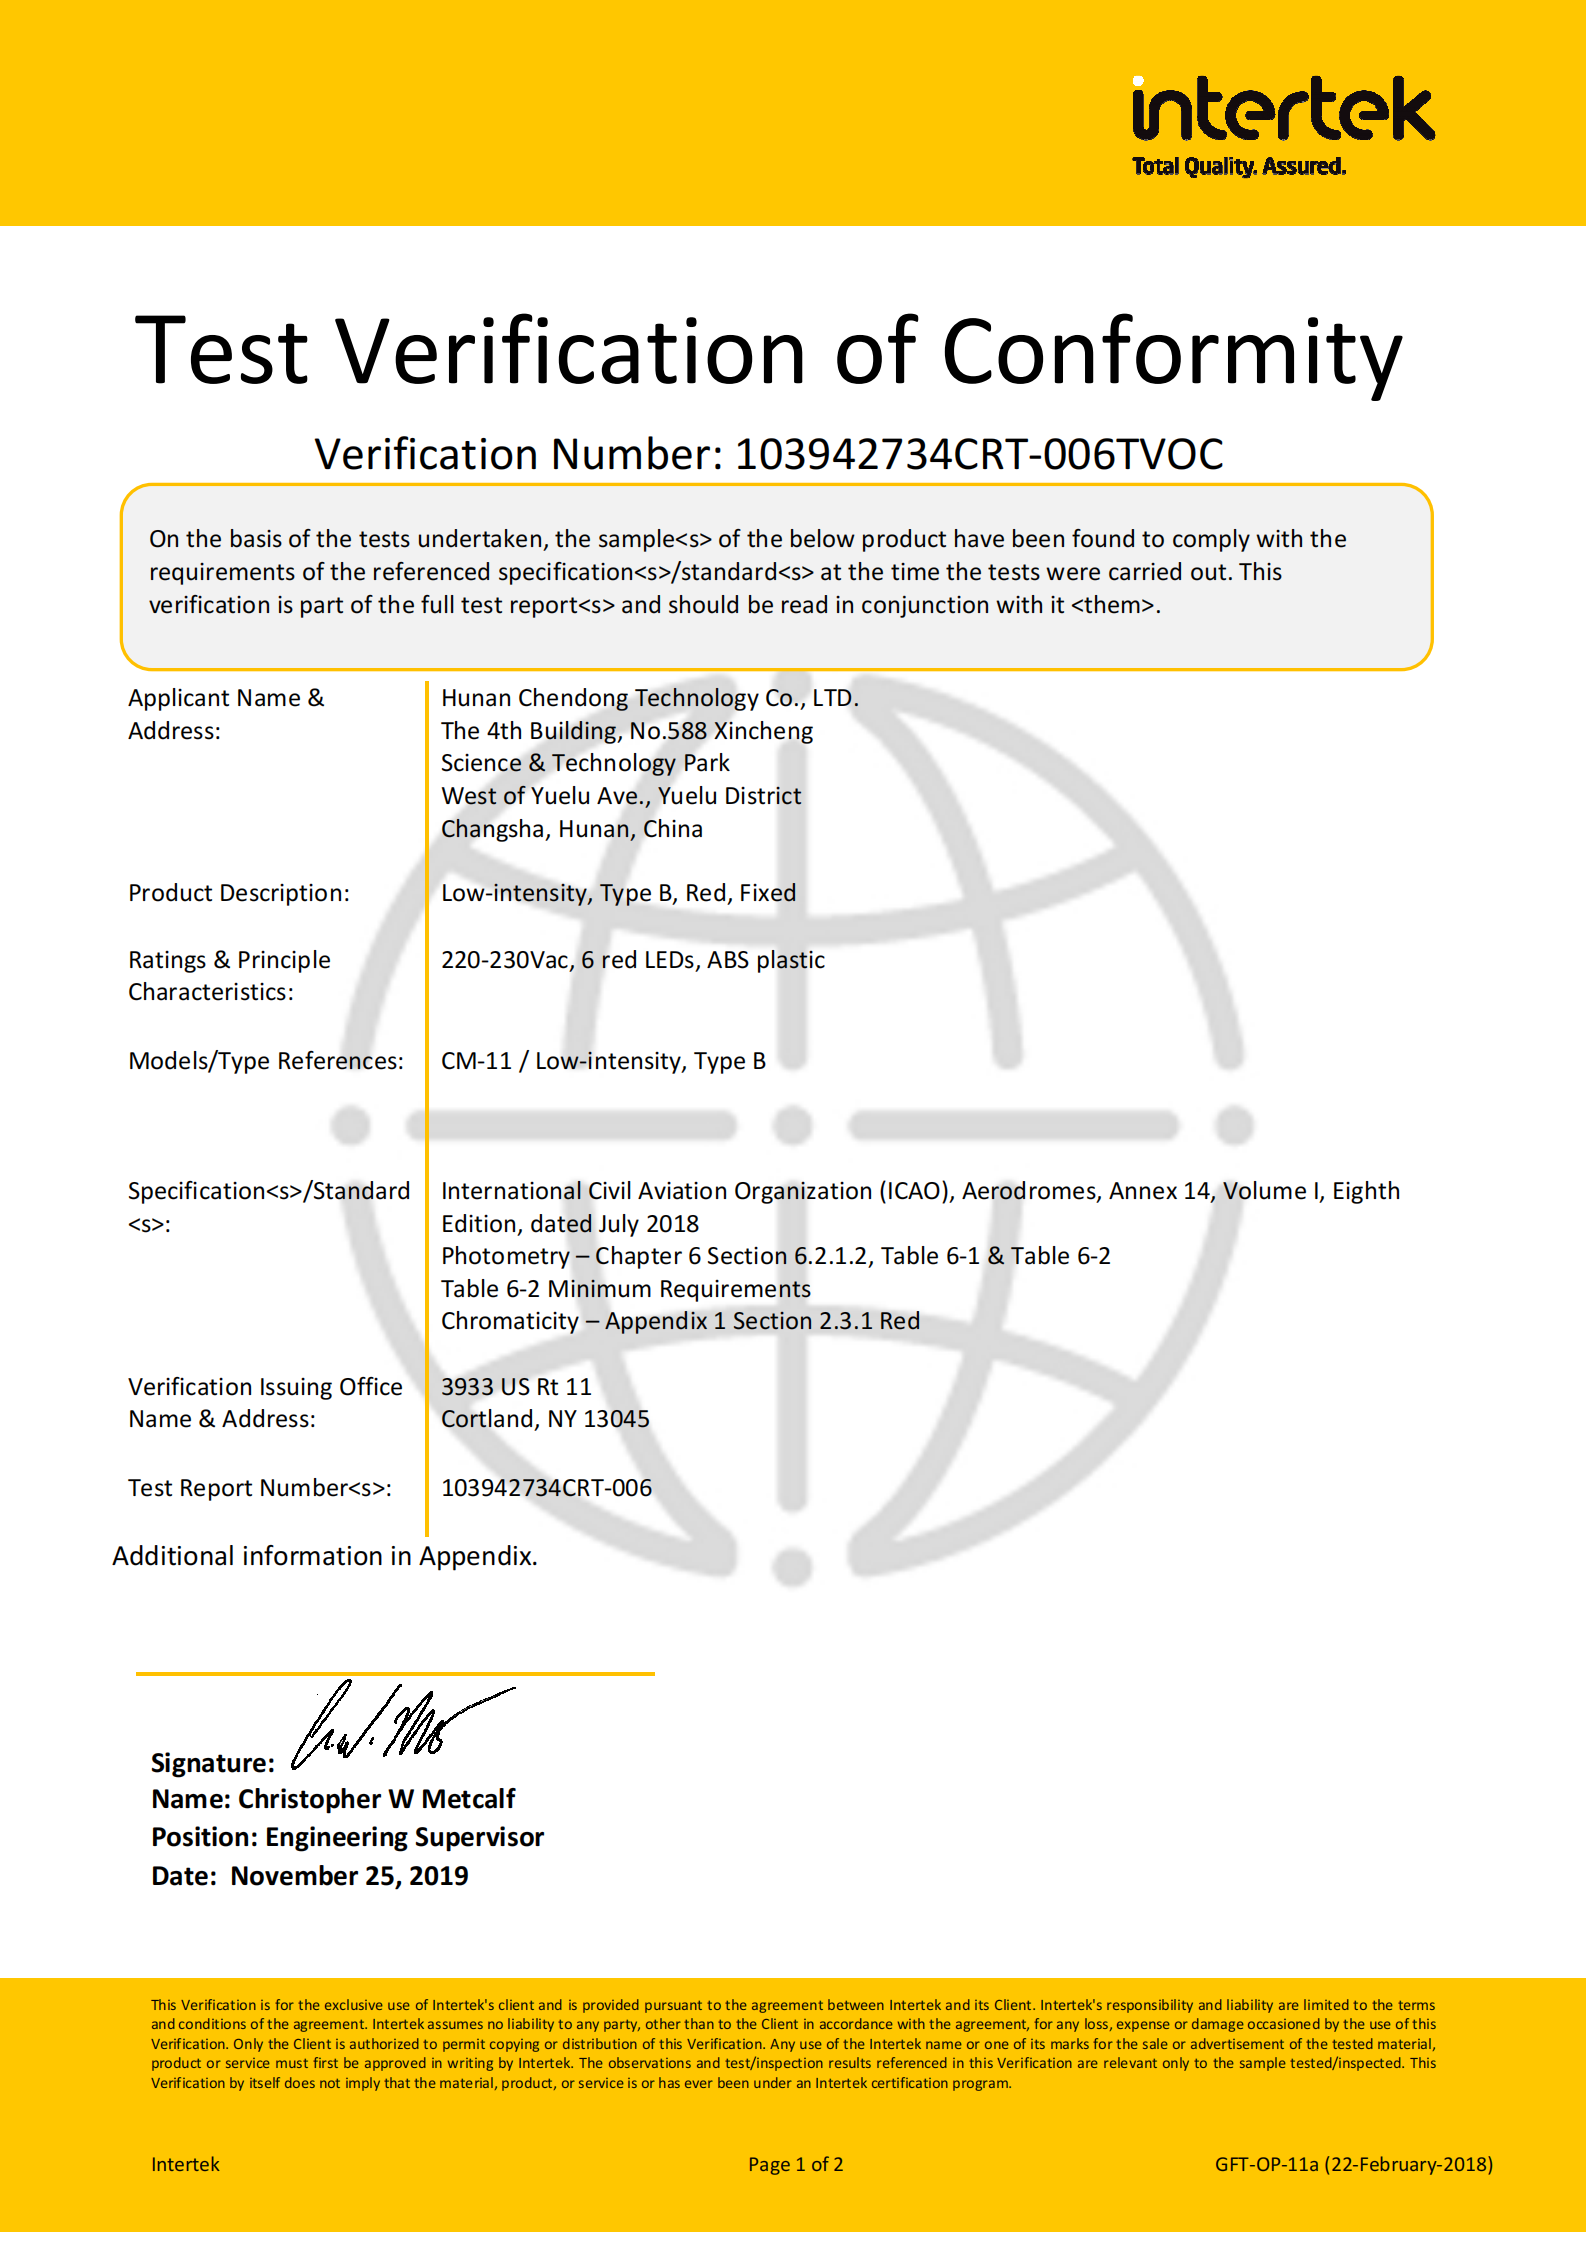 Congratulats CDT low intensity LED aircraft warning light passed the BV Conformity